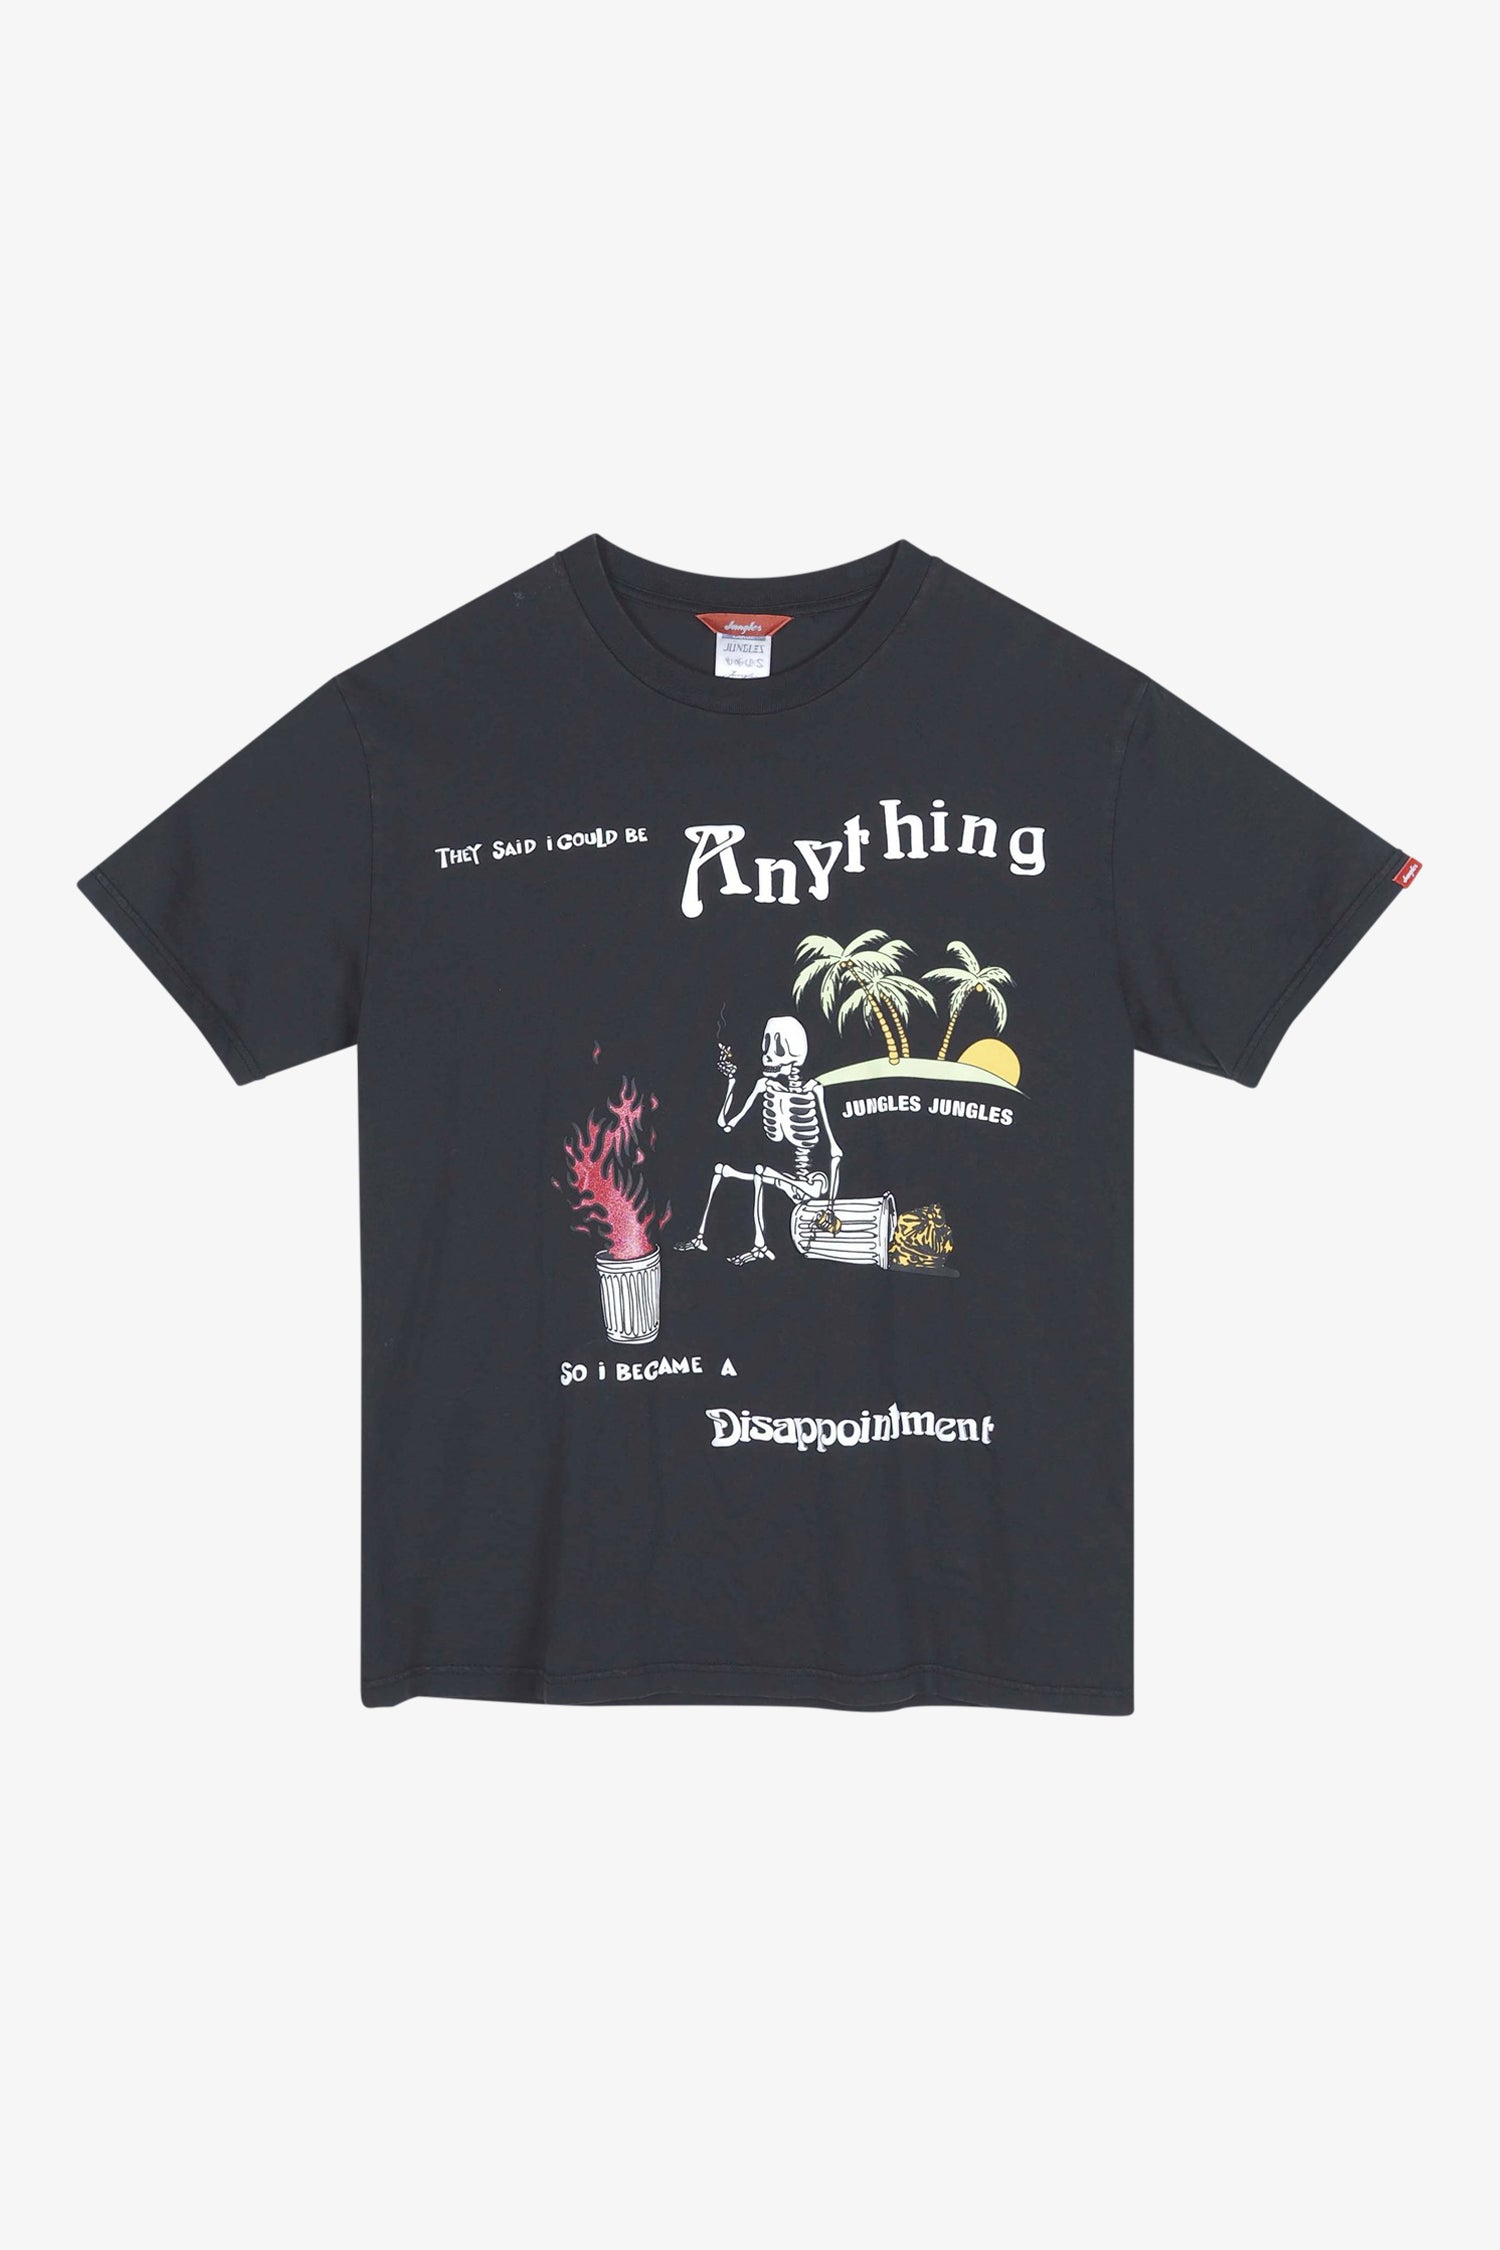 Disappointment Tee